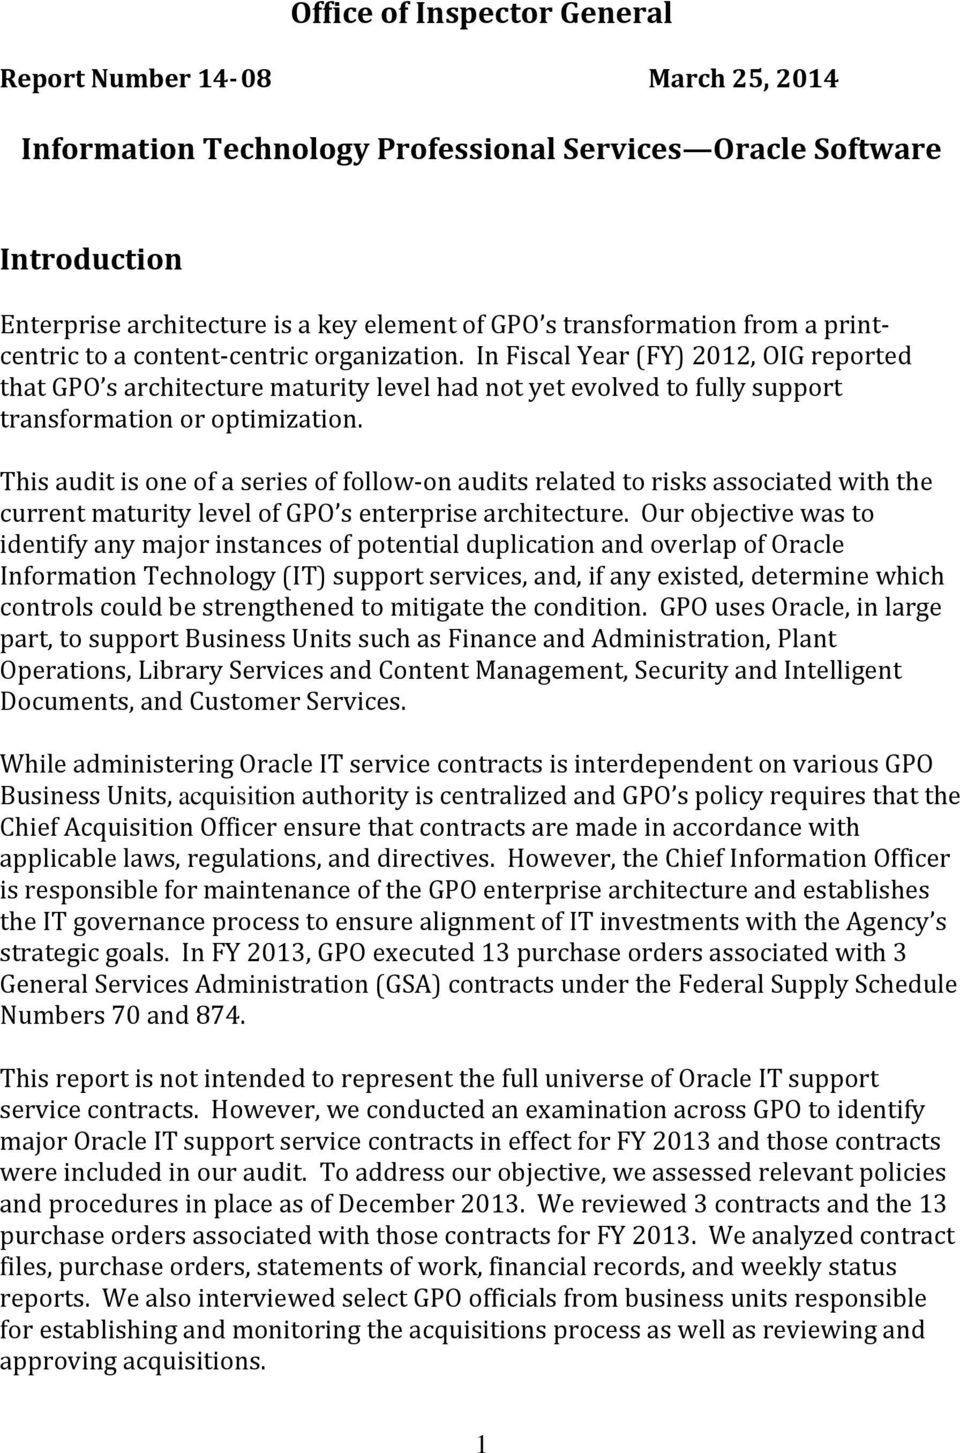 In Fiscal Year (FY) 2012, OIG reported that GPO s architecture maturity level had not yet evolved to fully support transformation or optimization.